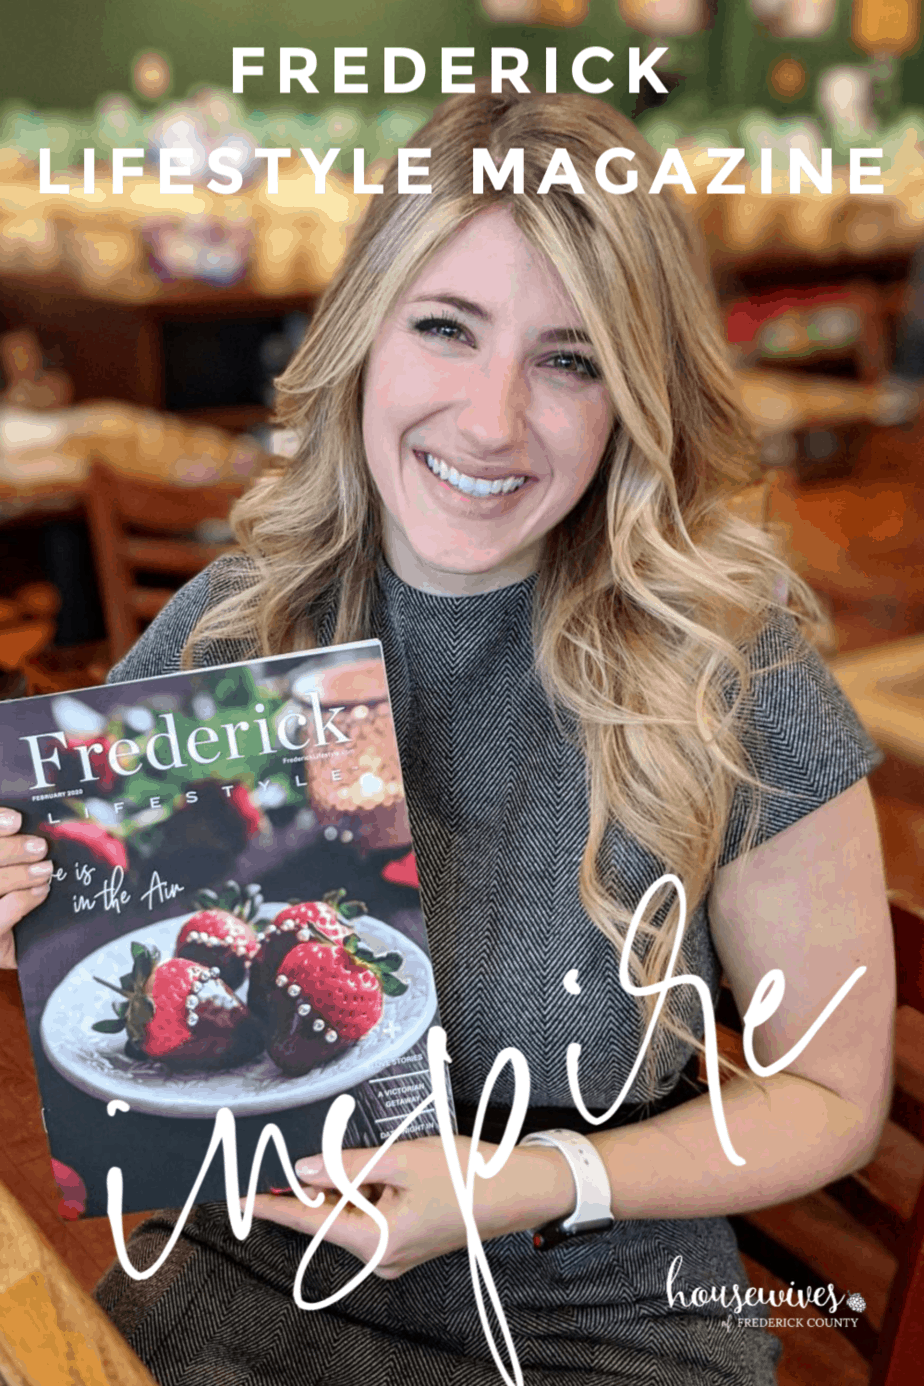 Frederick Lifestyle Magazine: Inspiring Hidden Heroes in Frederick Md